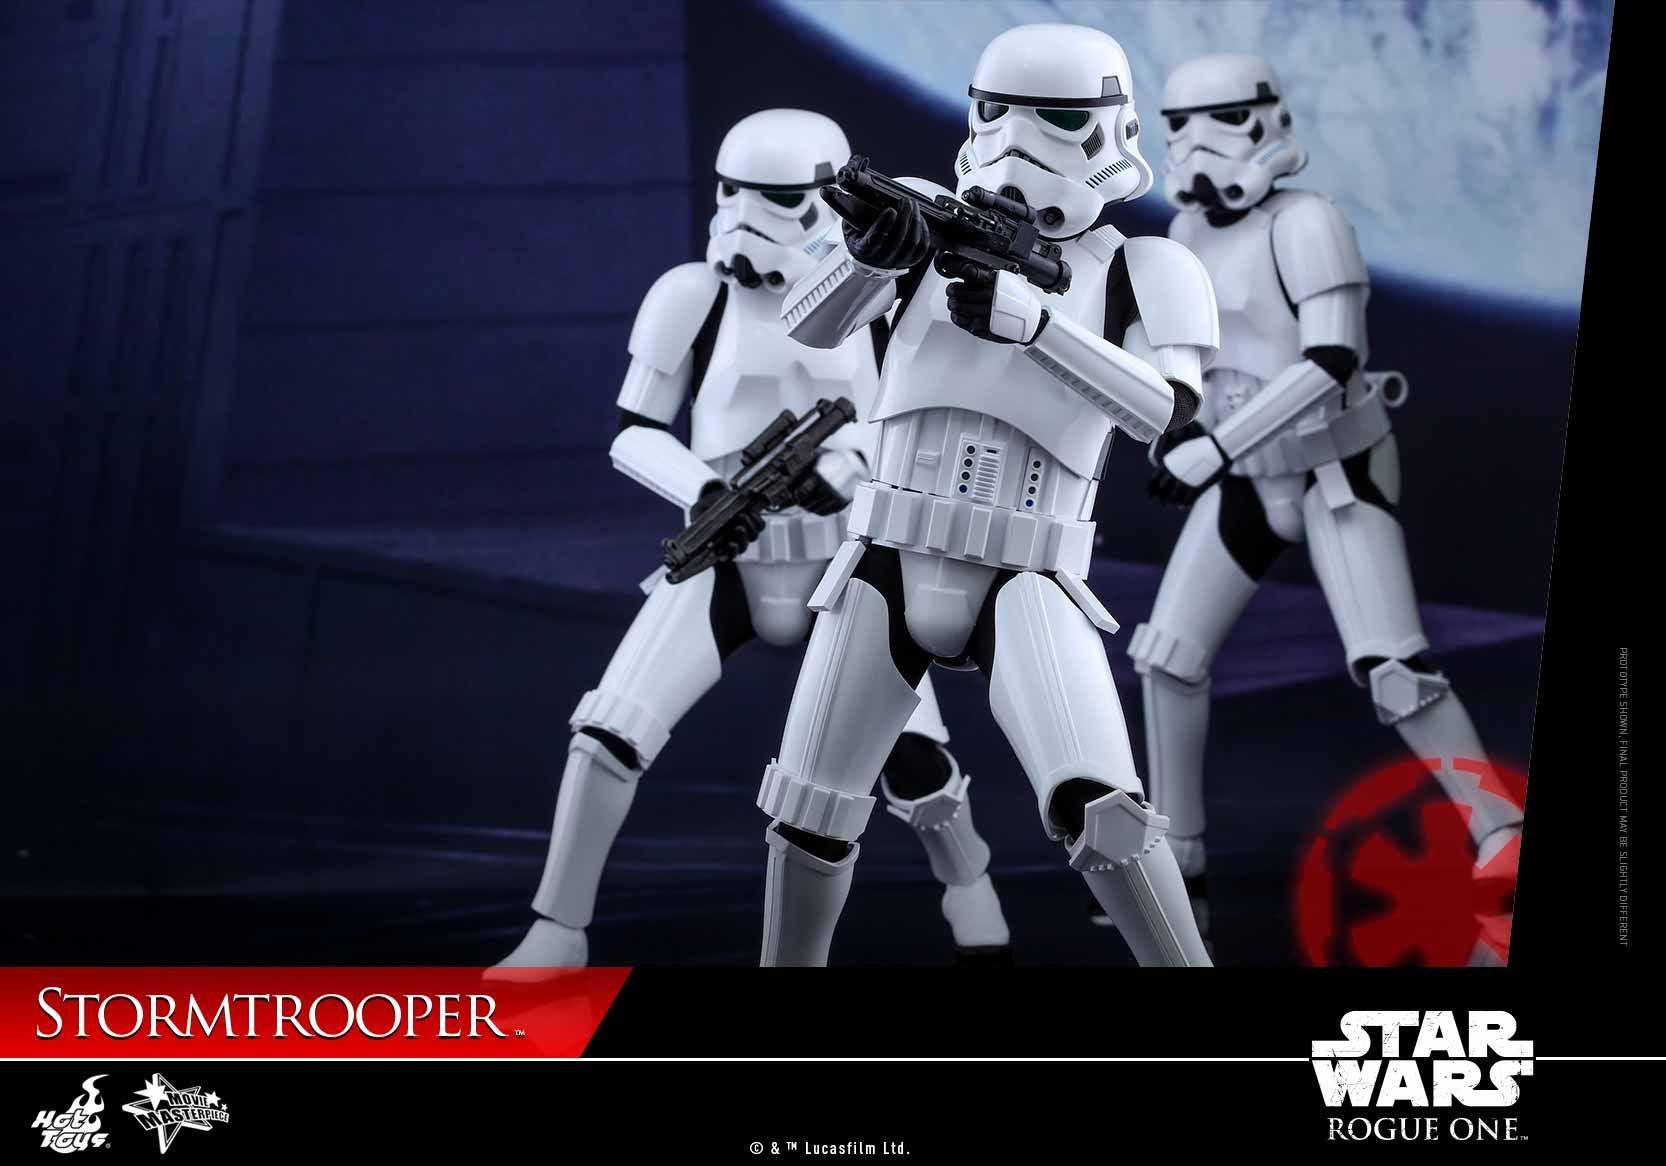 Hot Toys - MMS393 - Rogue One: A Star Wars Story - Stormtrooper - Marvelous Toys - 9